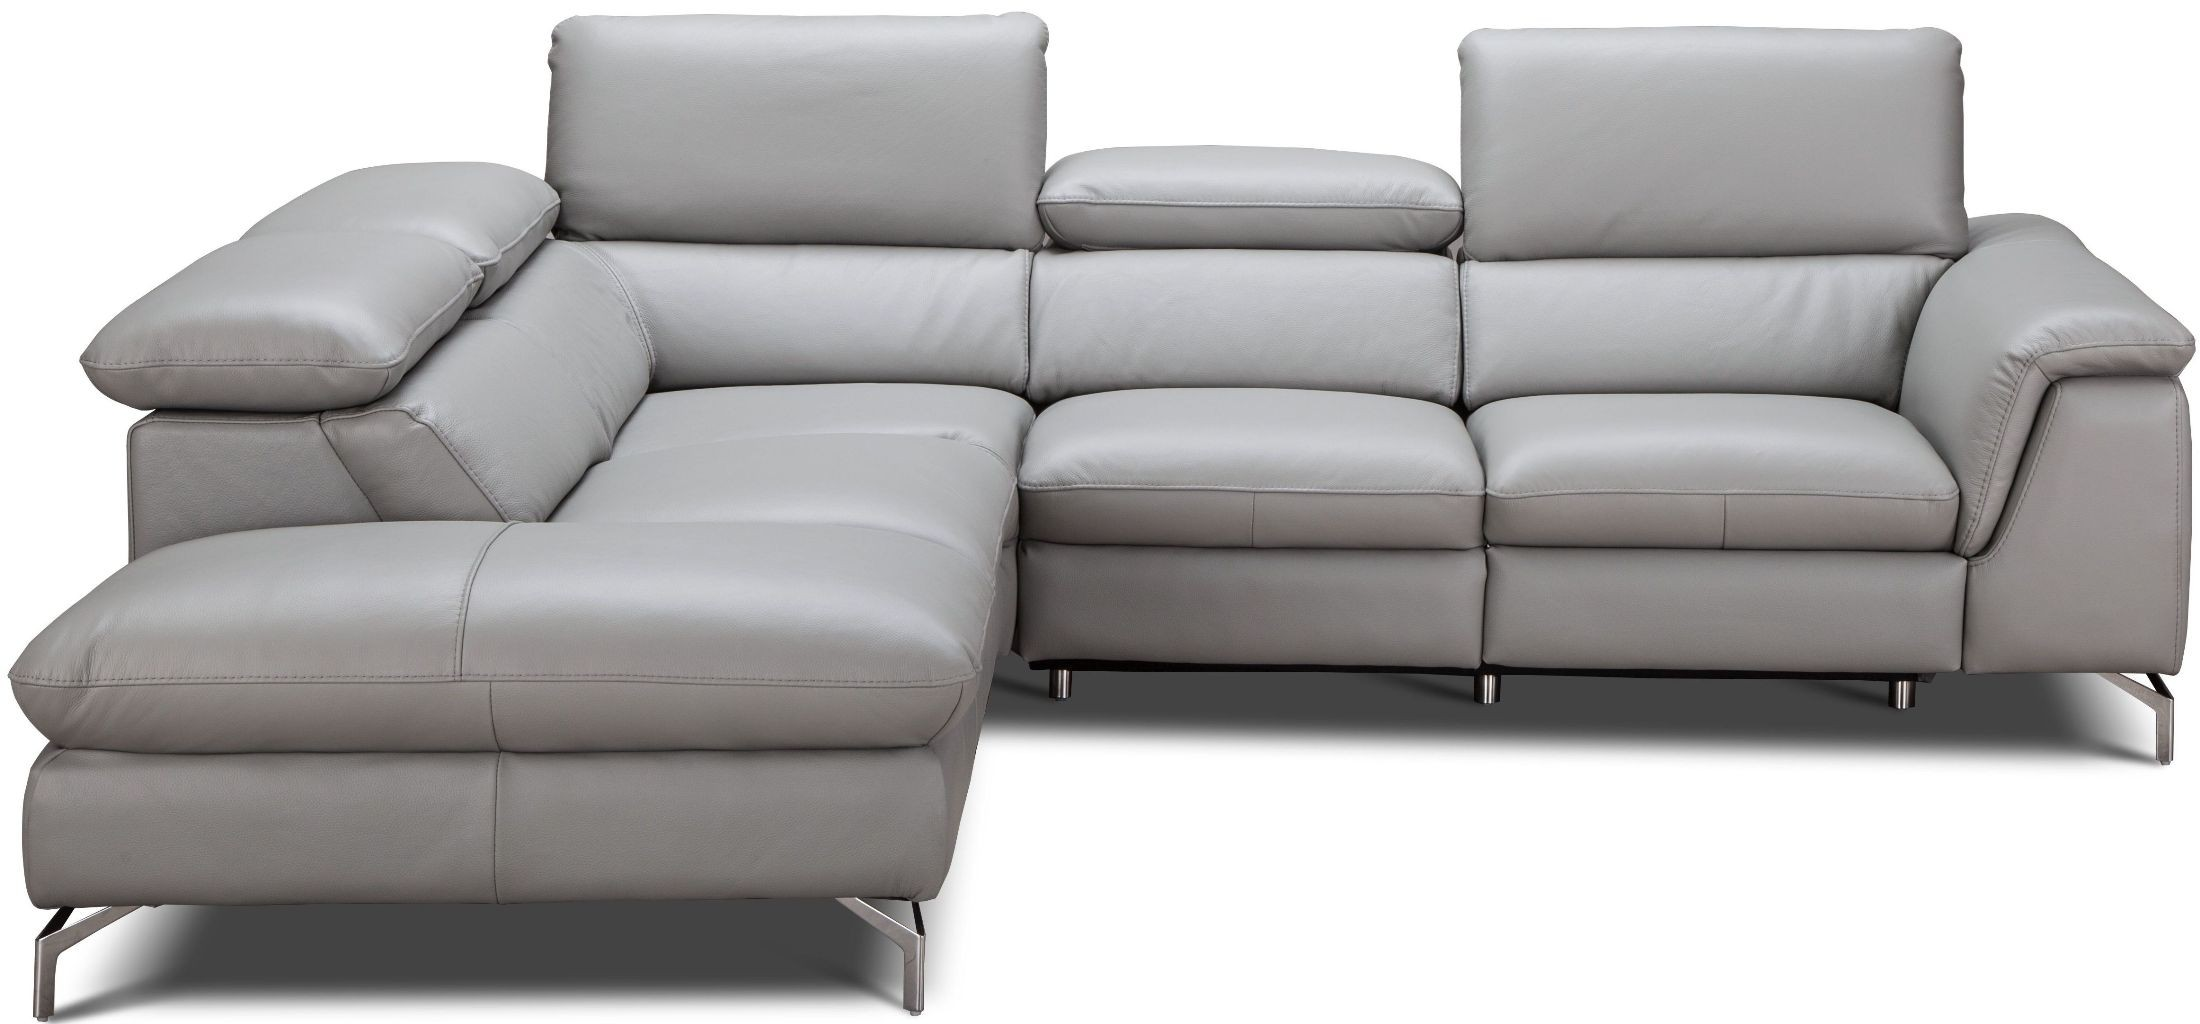 light gray leather reclining sofa american freight sofas viola premium power laf